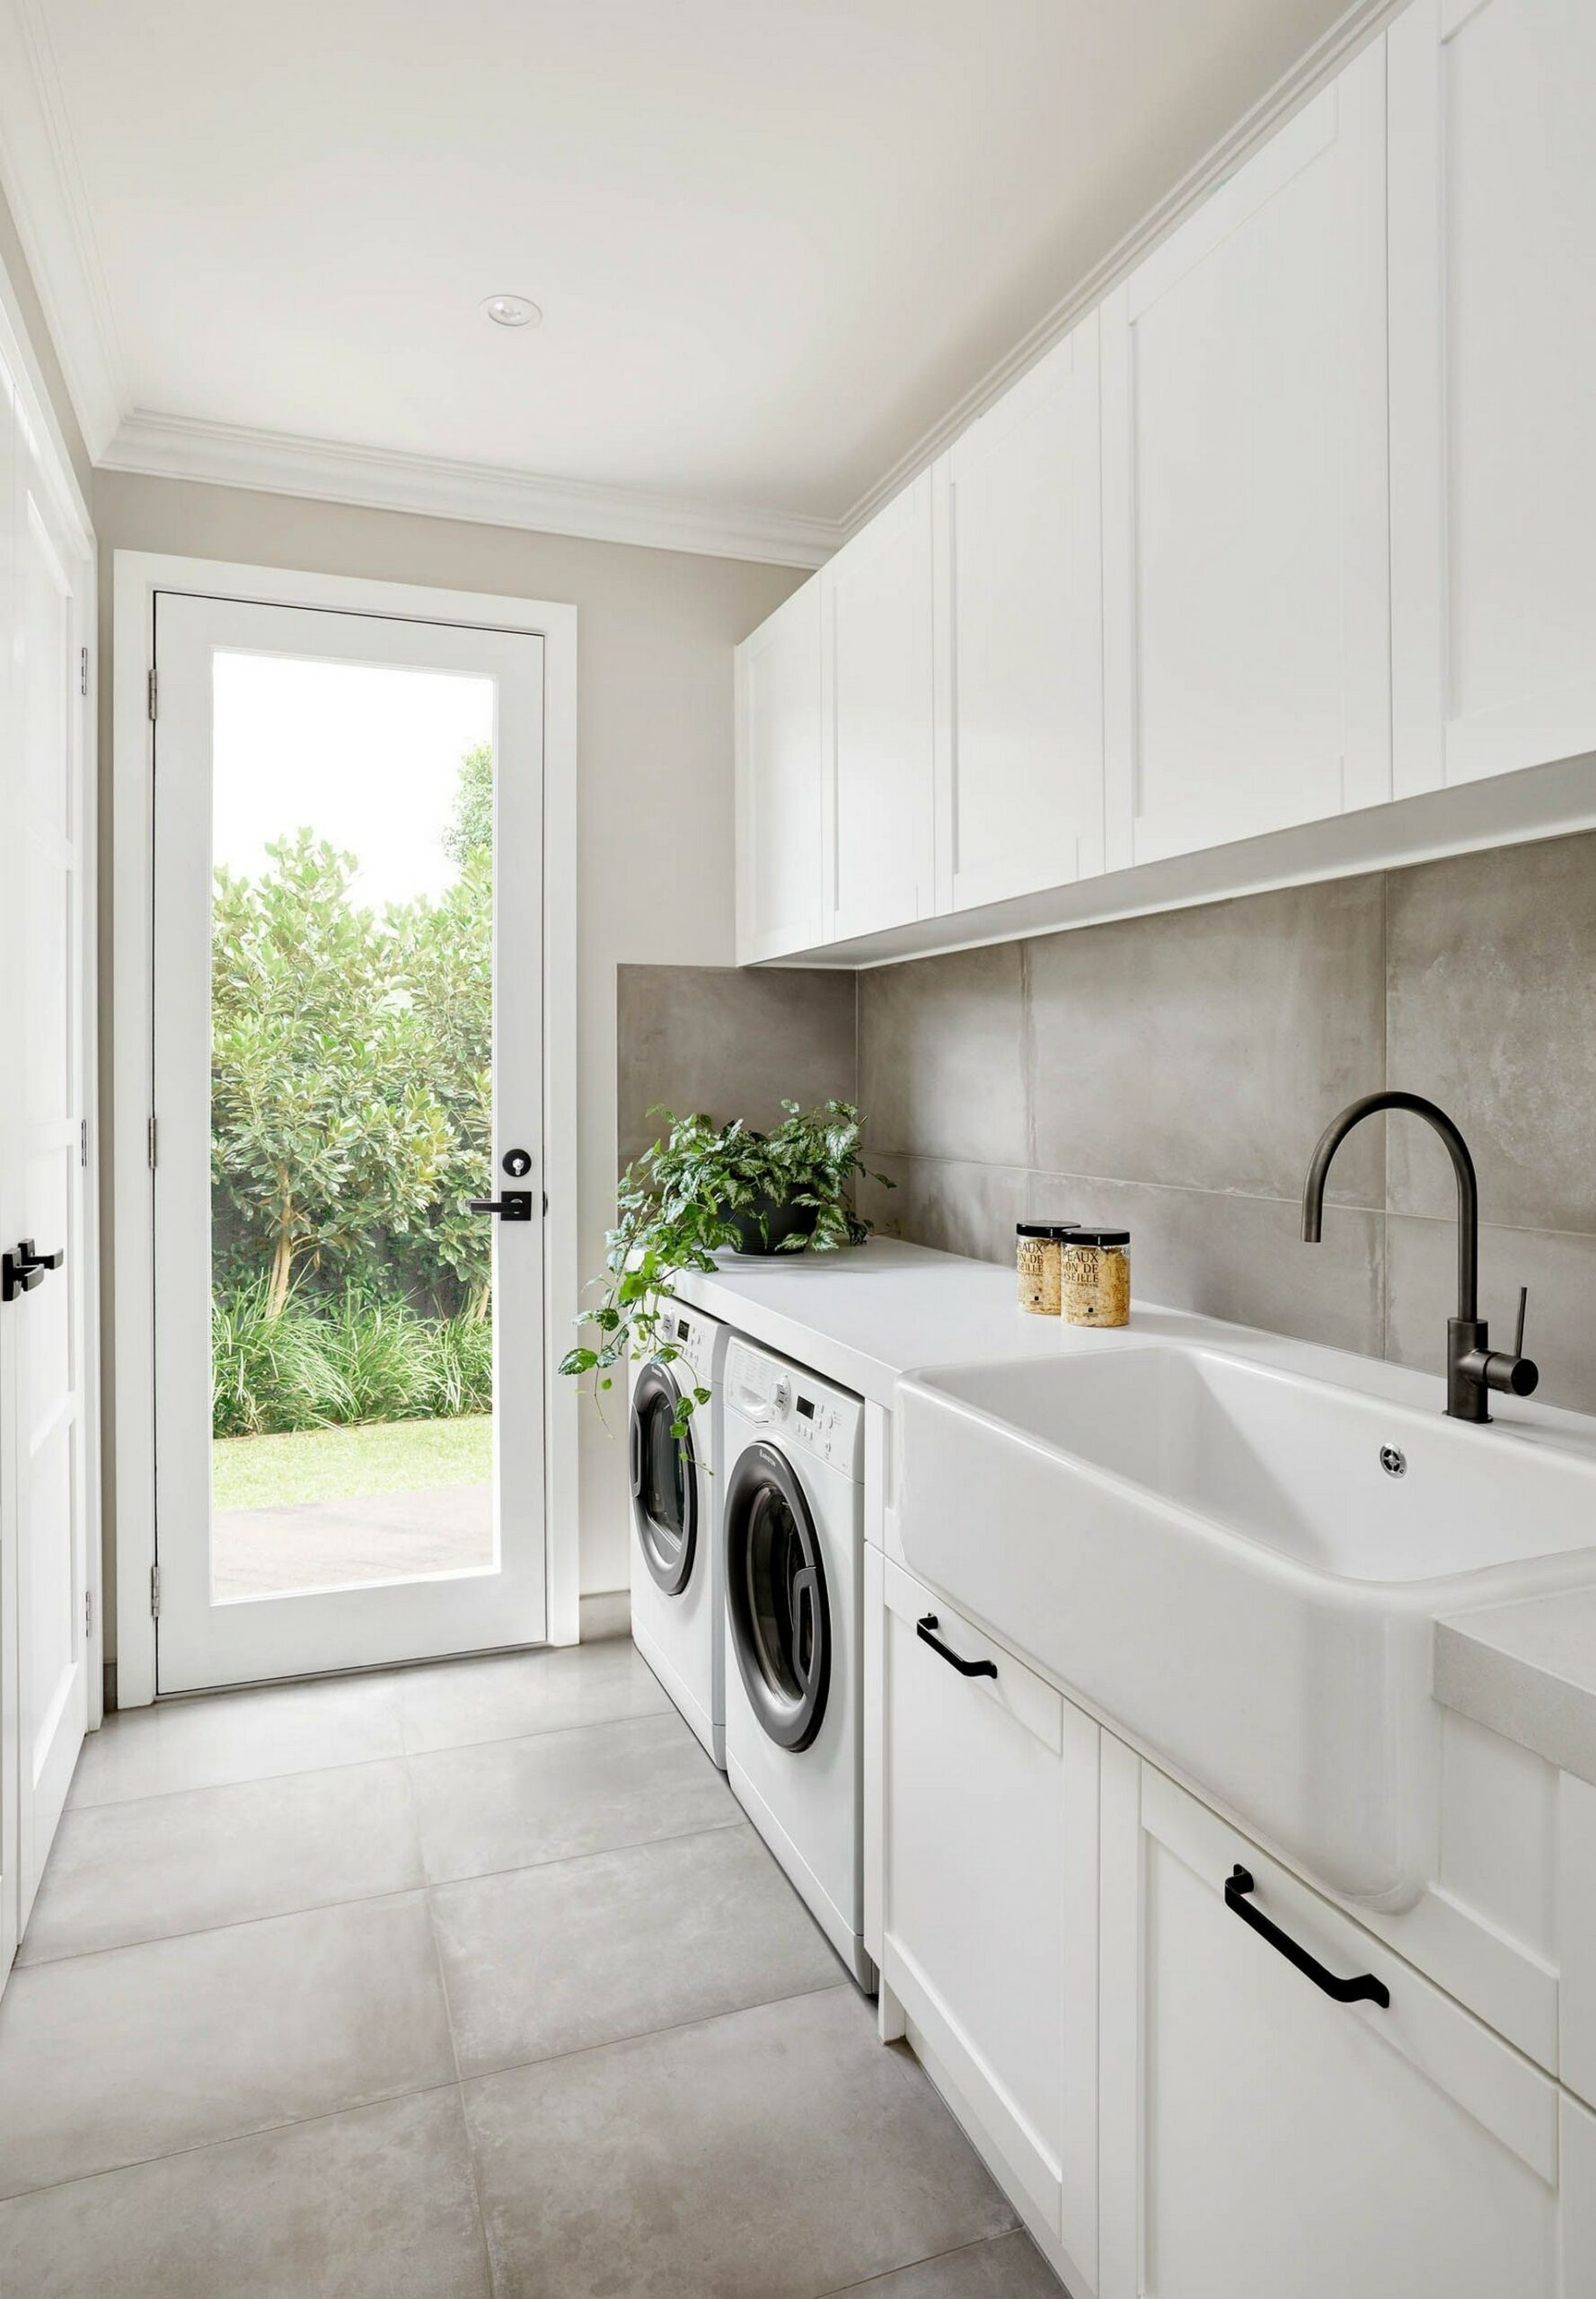 72 Laundry Room Cabinets All You Need To Know 48